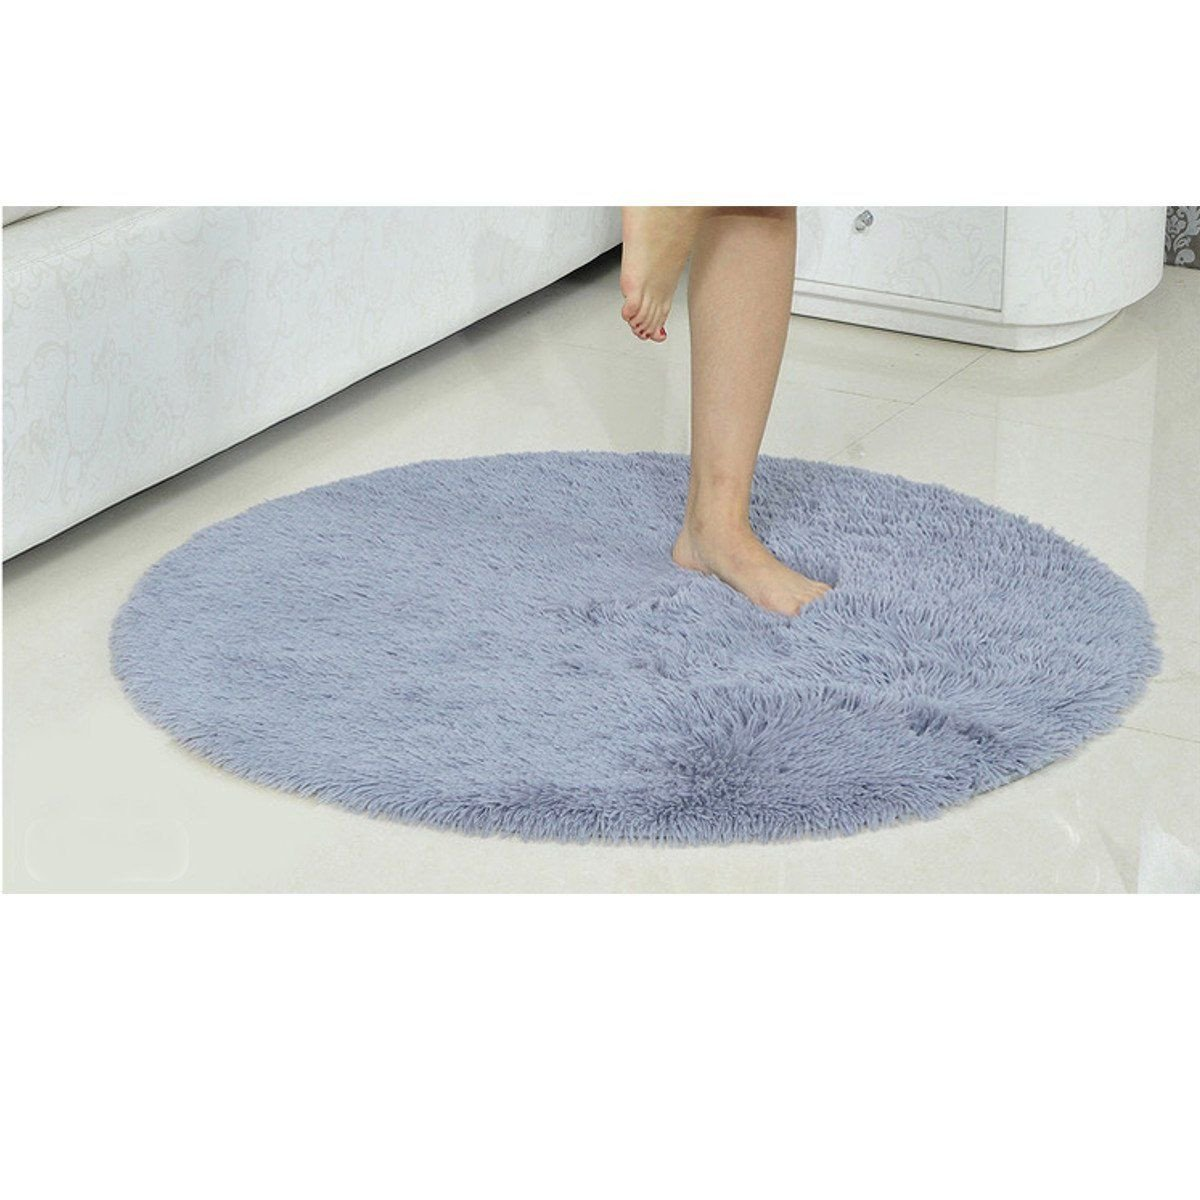 Fluffy Carpet for Bedroom Fresh Round Fluffy Rugs Anti Skid Shaggy area Rug Room Home